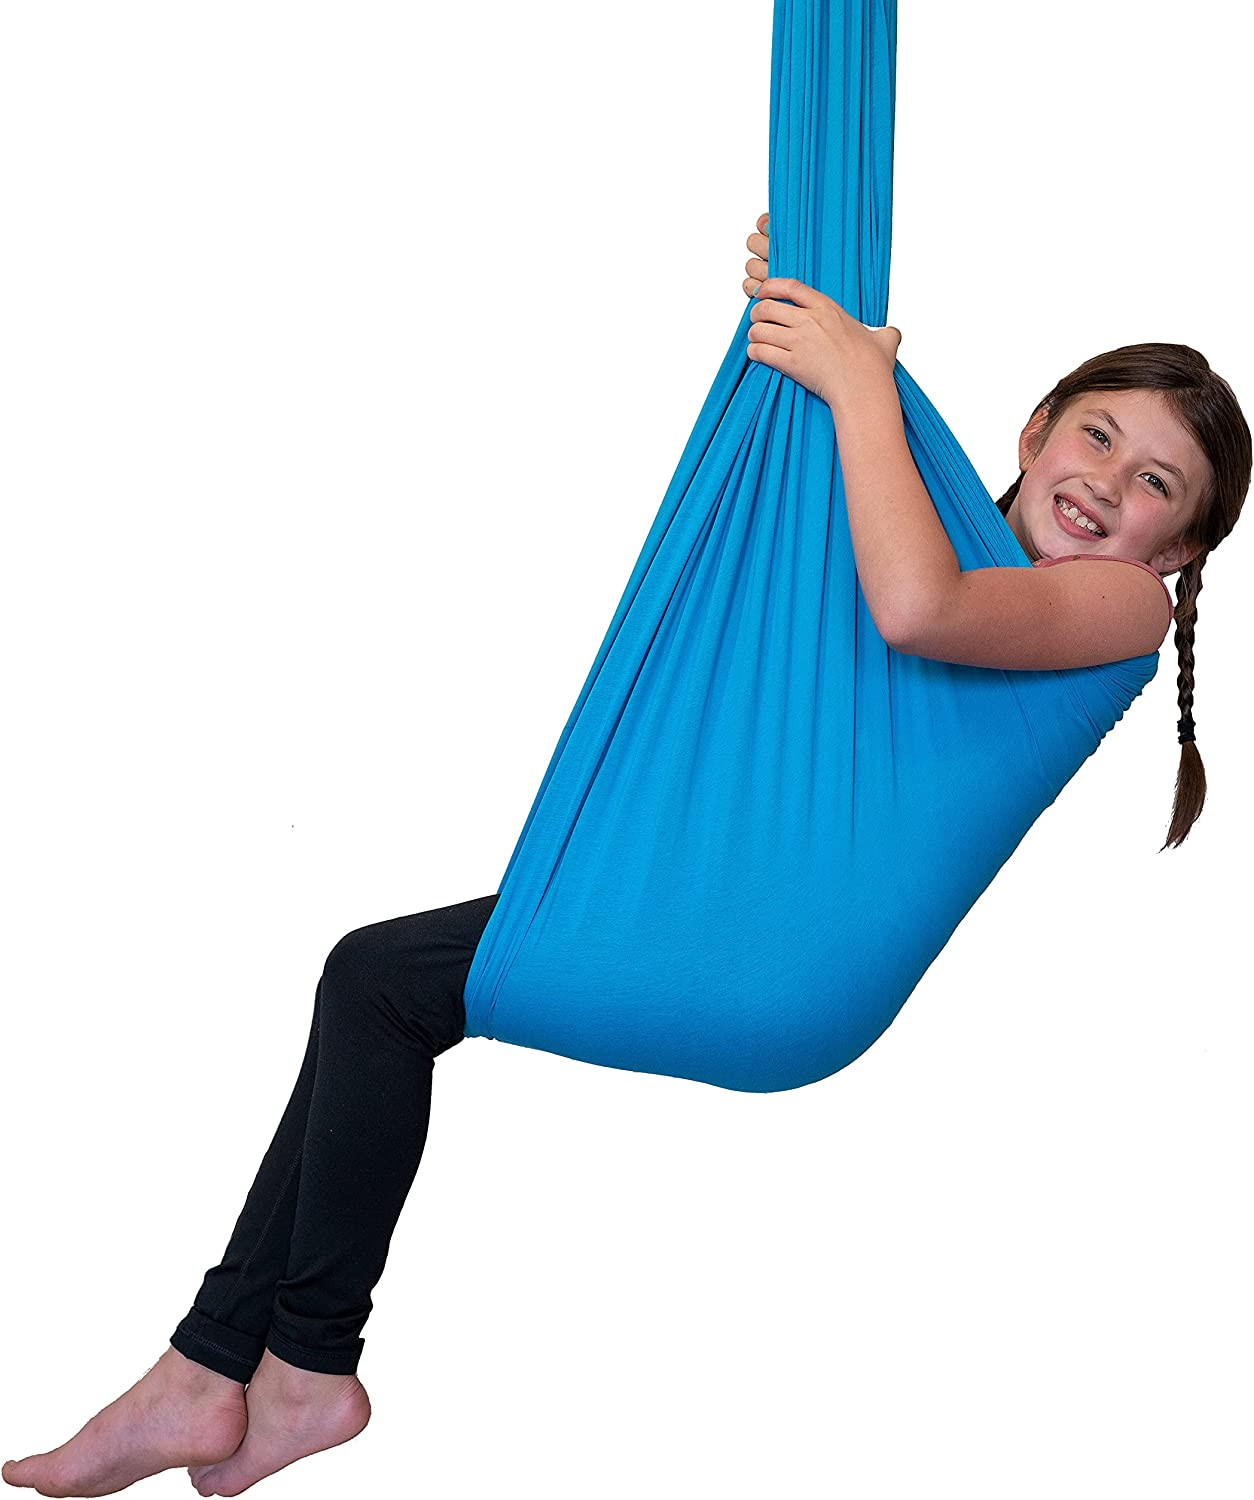 Red Wagon Integrity Sensory Swing for Kids with Special Needs, Processing Disorders, Asperger, Autism, or ADHD, Calming Therapy and Play for Stress or Anxiety, Ceiling Mounted Hammock